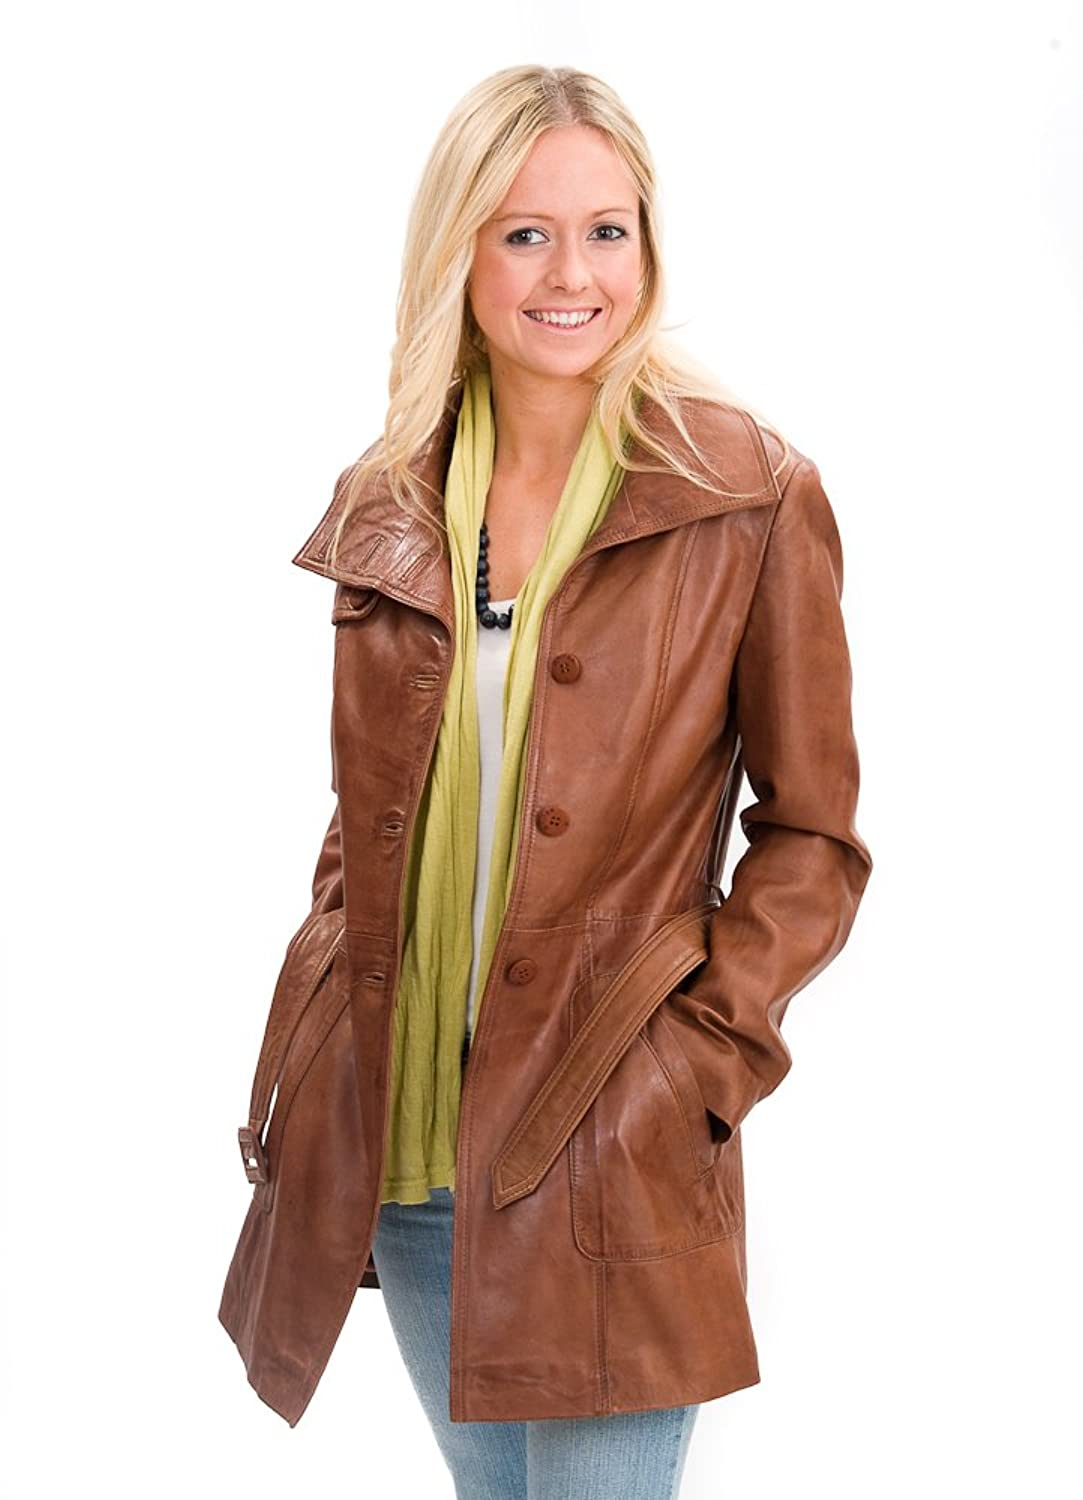 ladies soft leather jackets jackets review